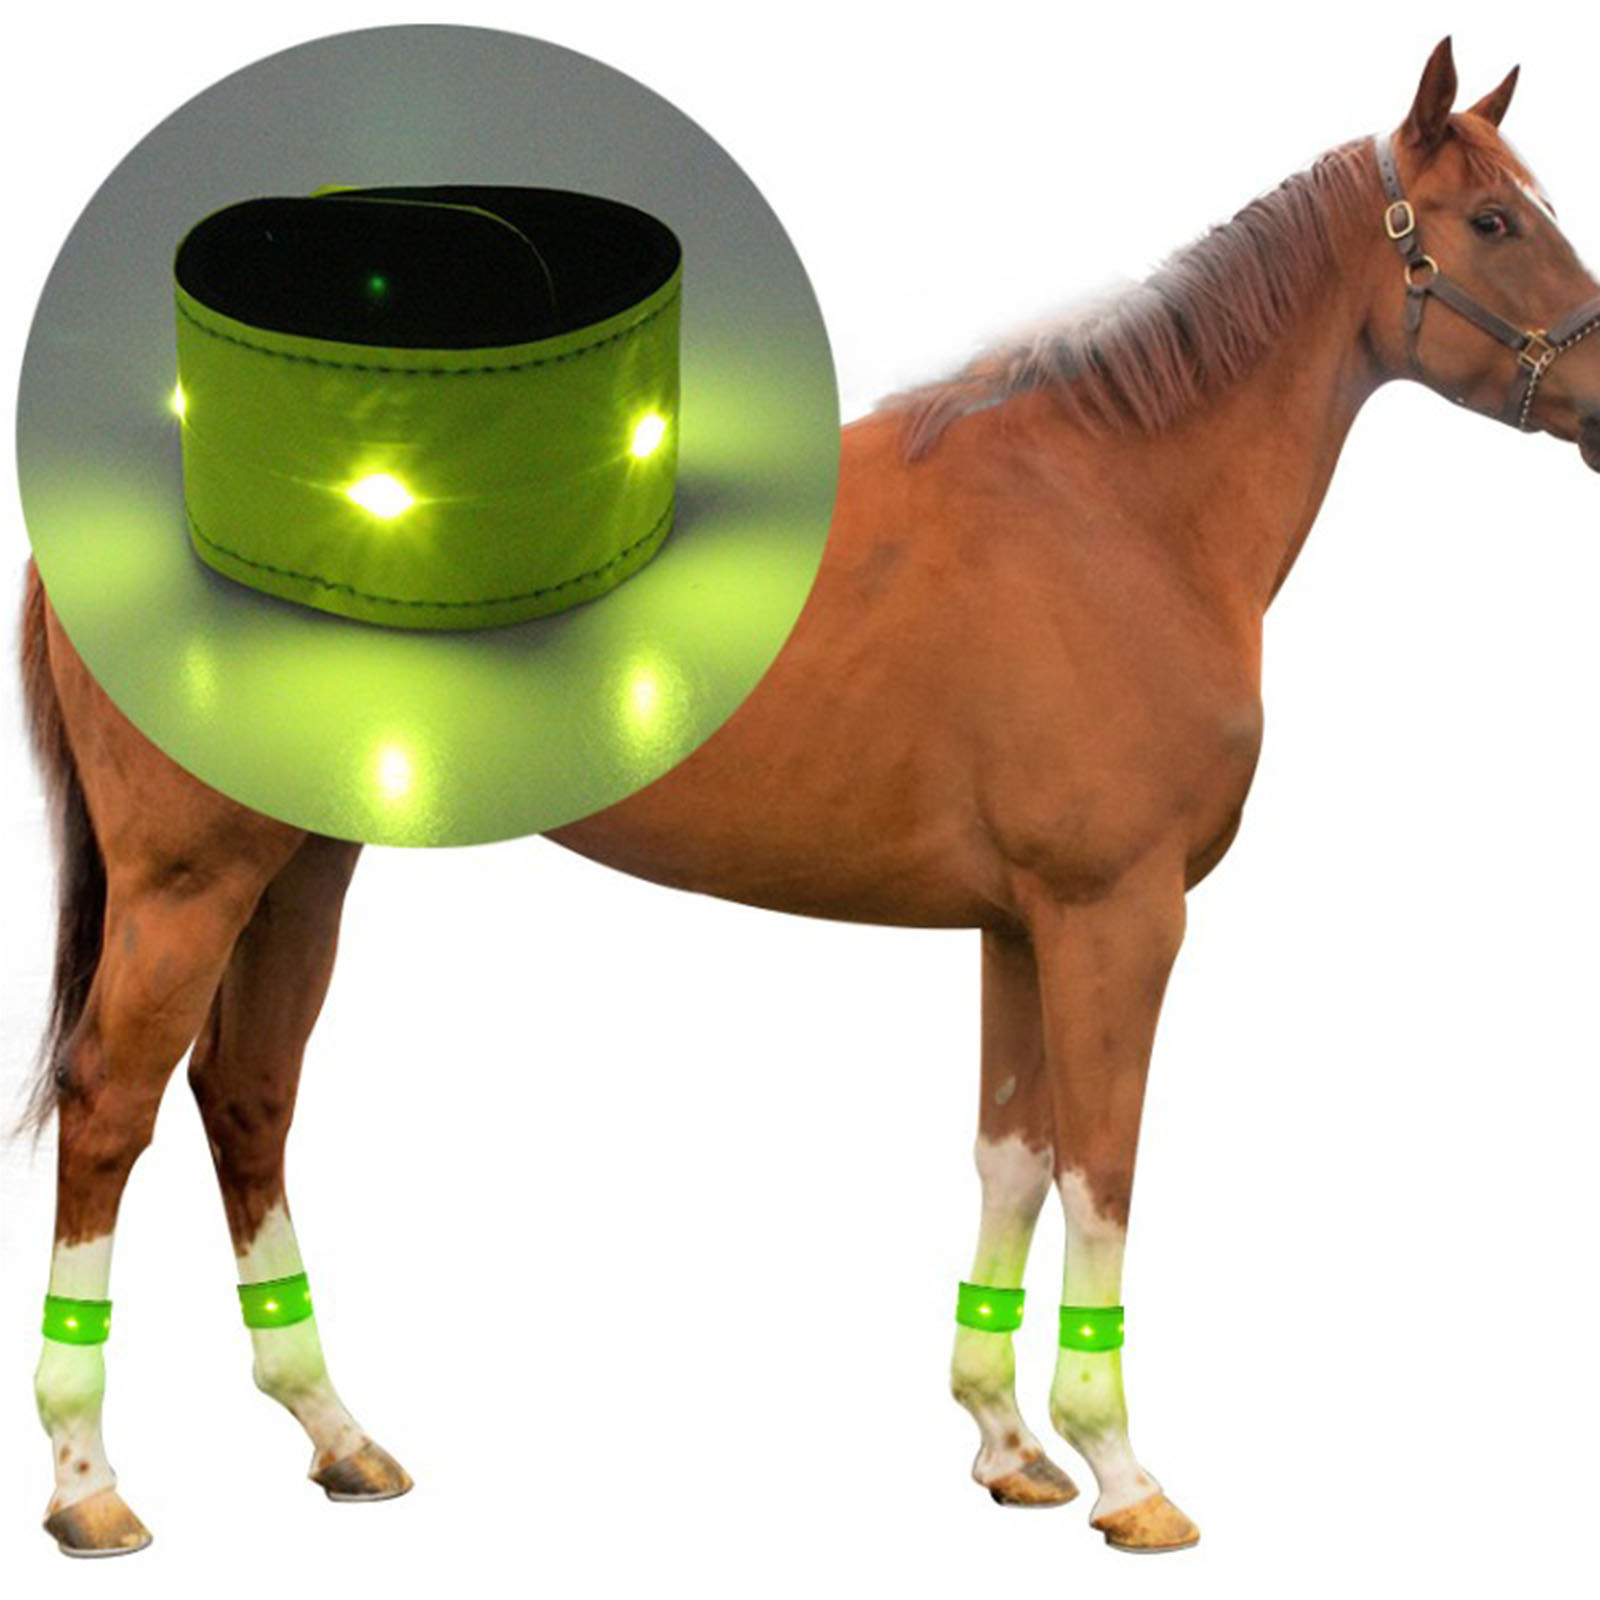 Equestrian Supply LED Horse Leg Strap Reflective Belts for Arm Wrist Ankle